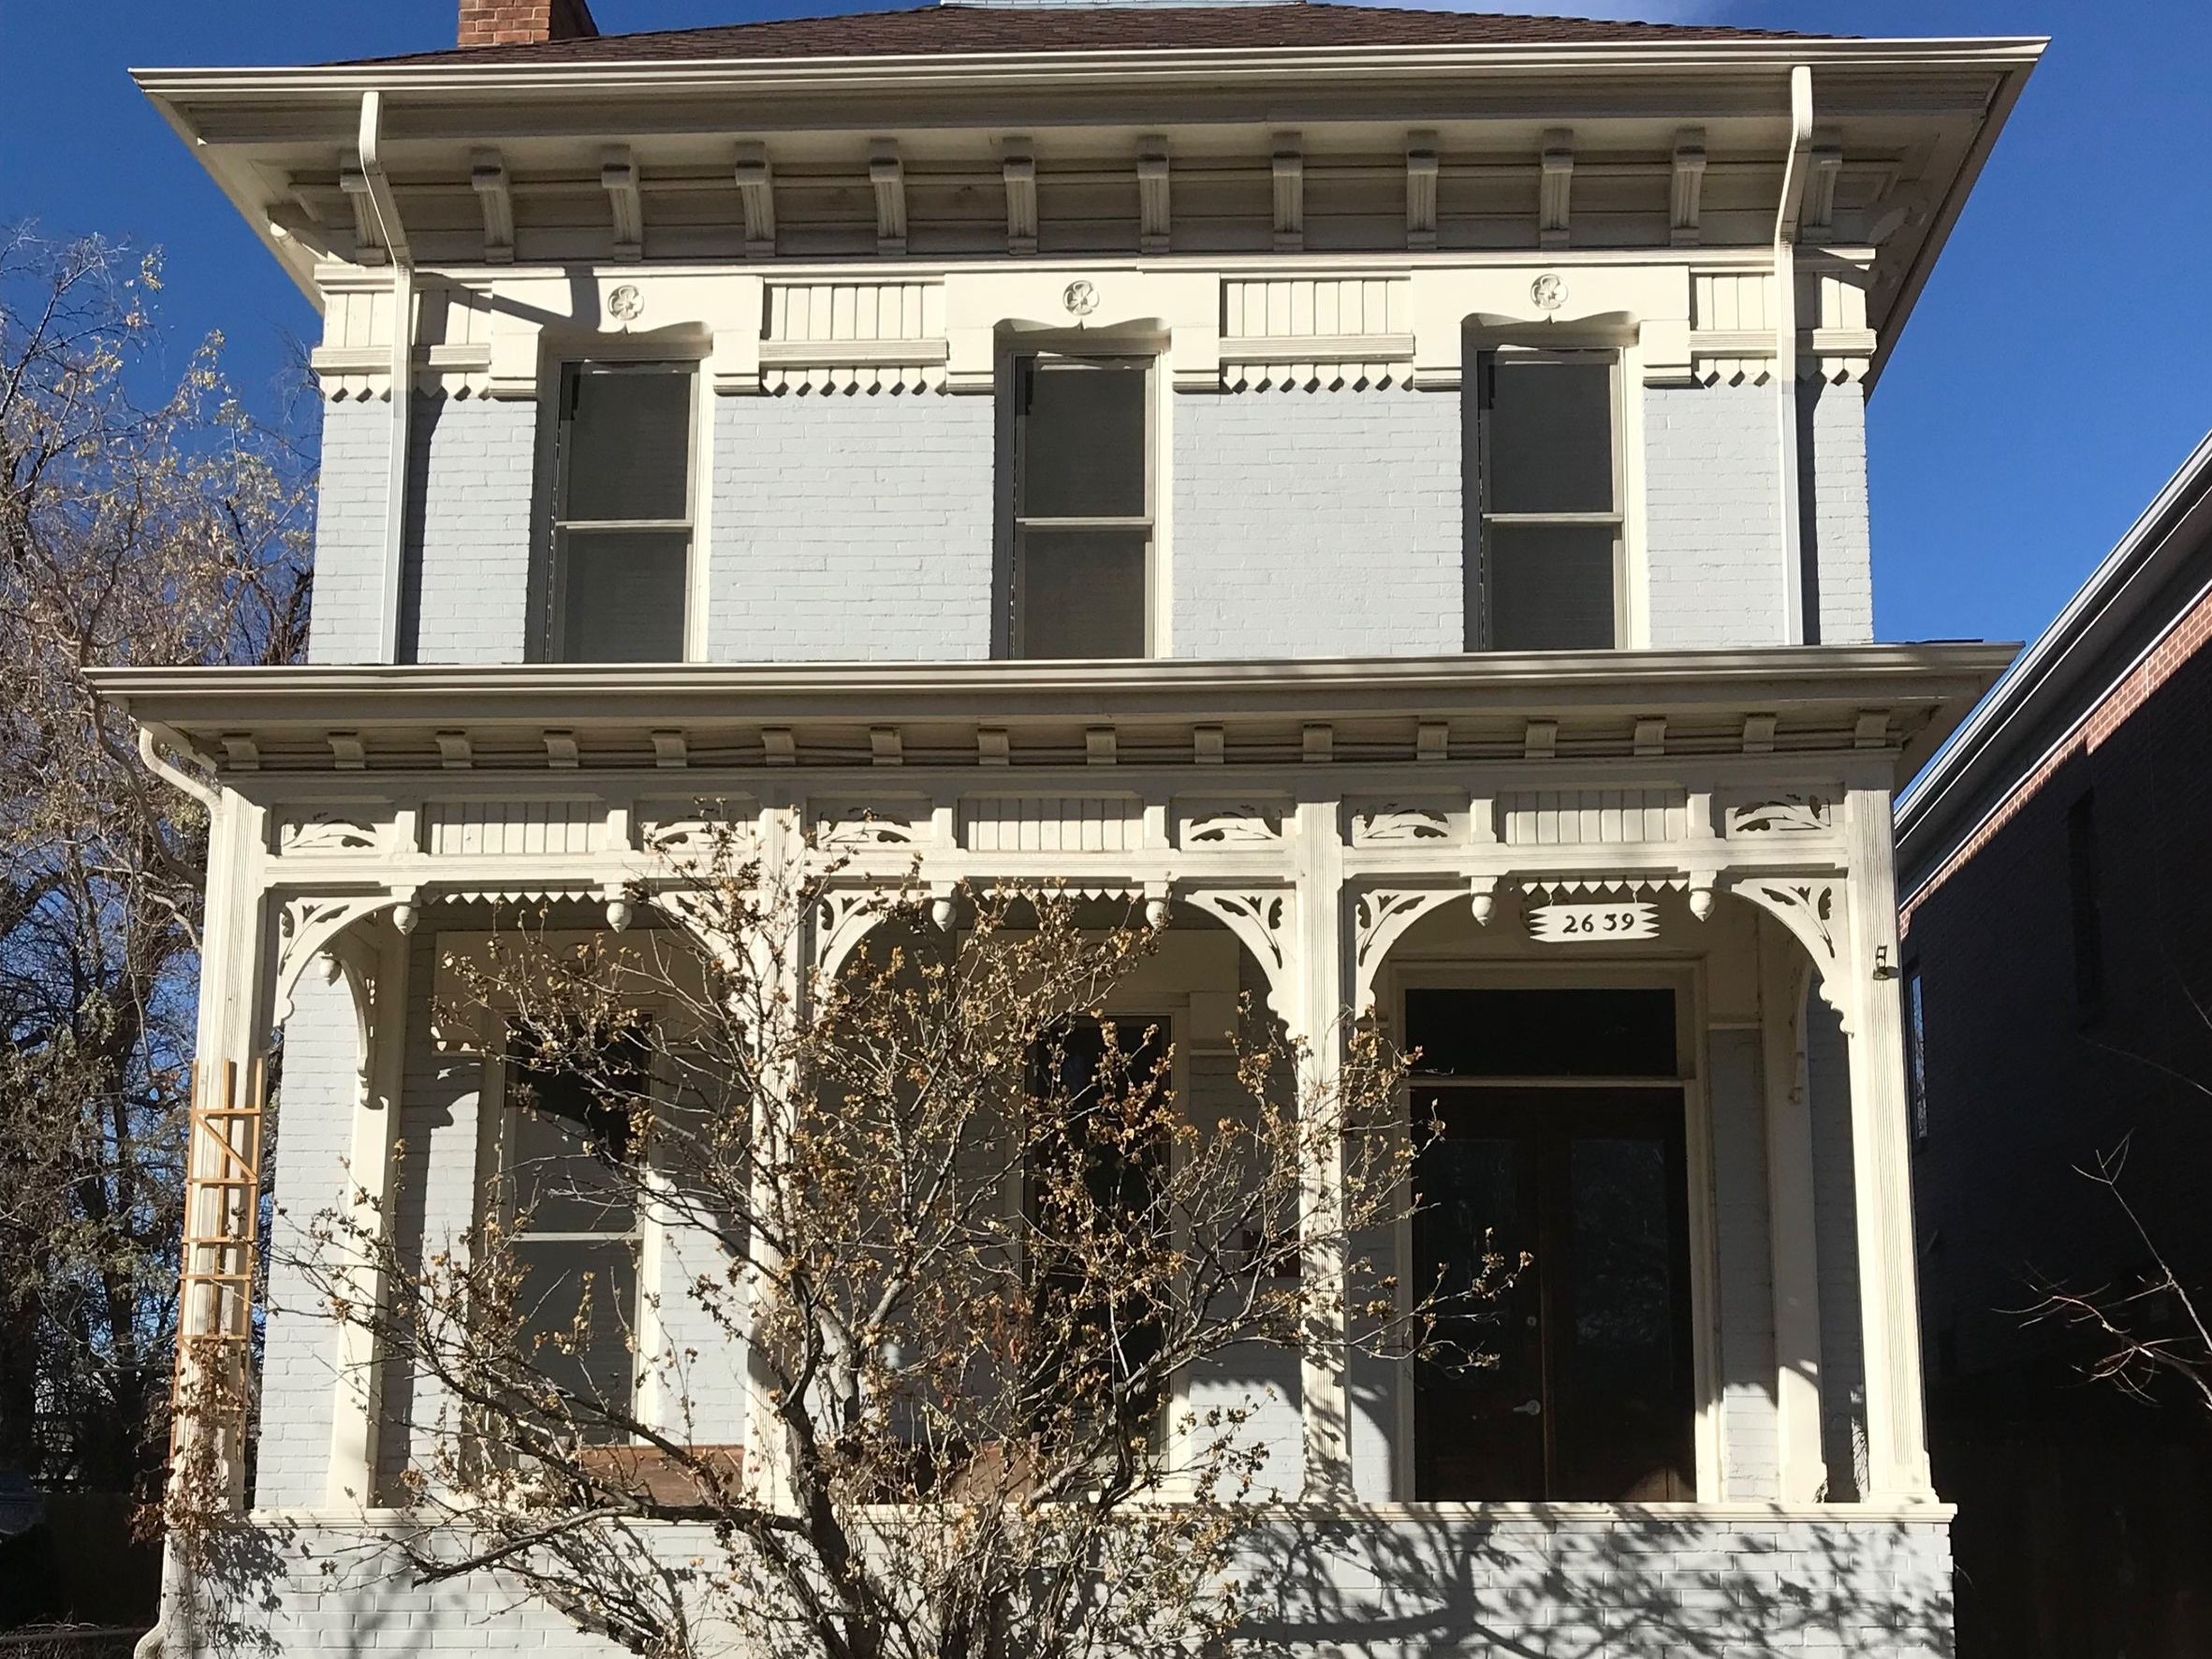 Italianate - In style in Curtis Park from its origins in the 1870s until about 1885.